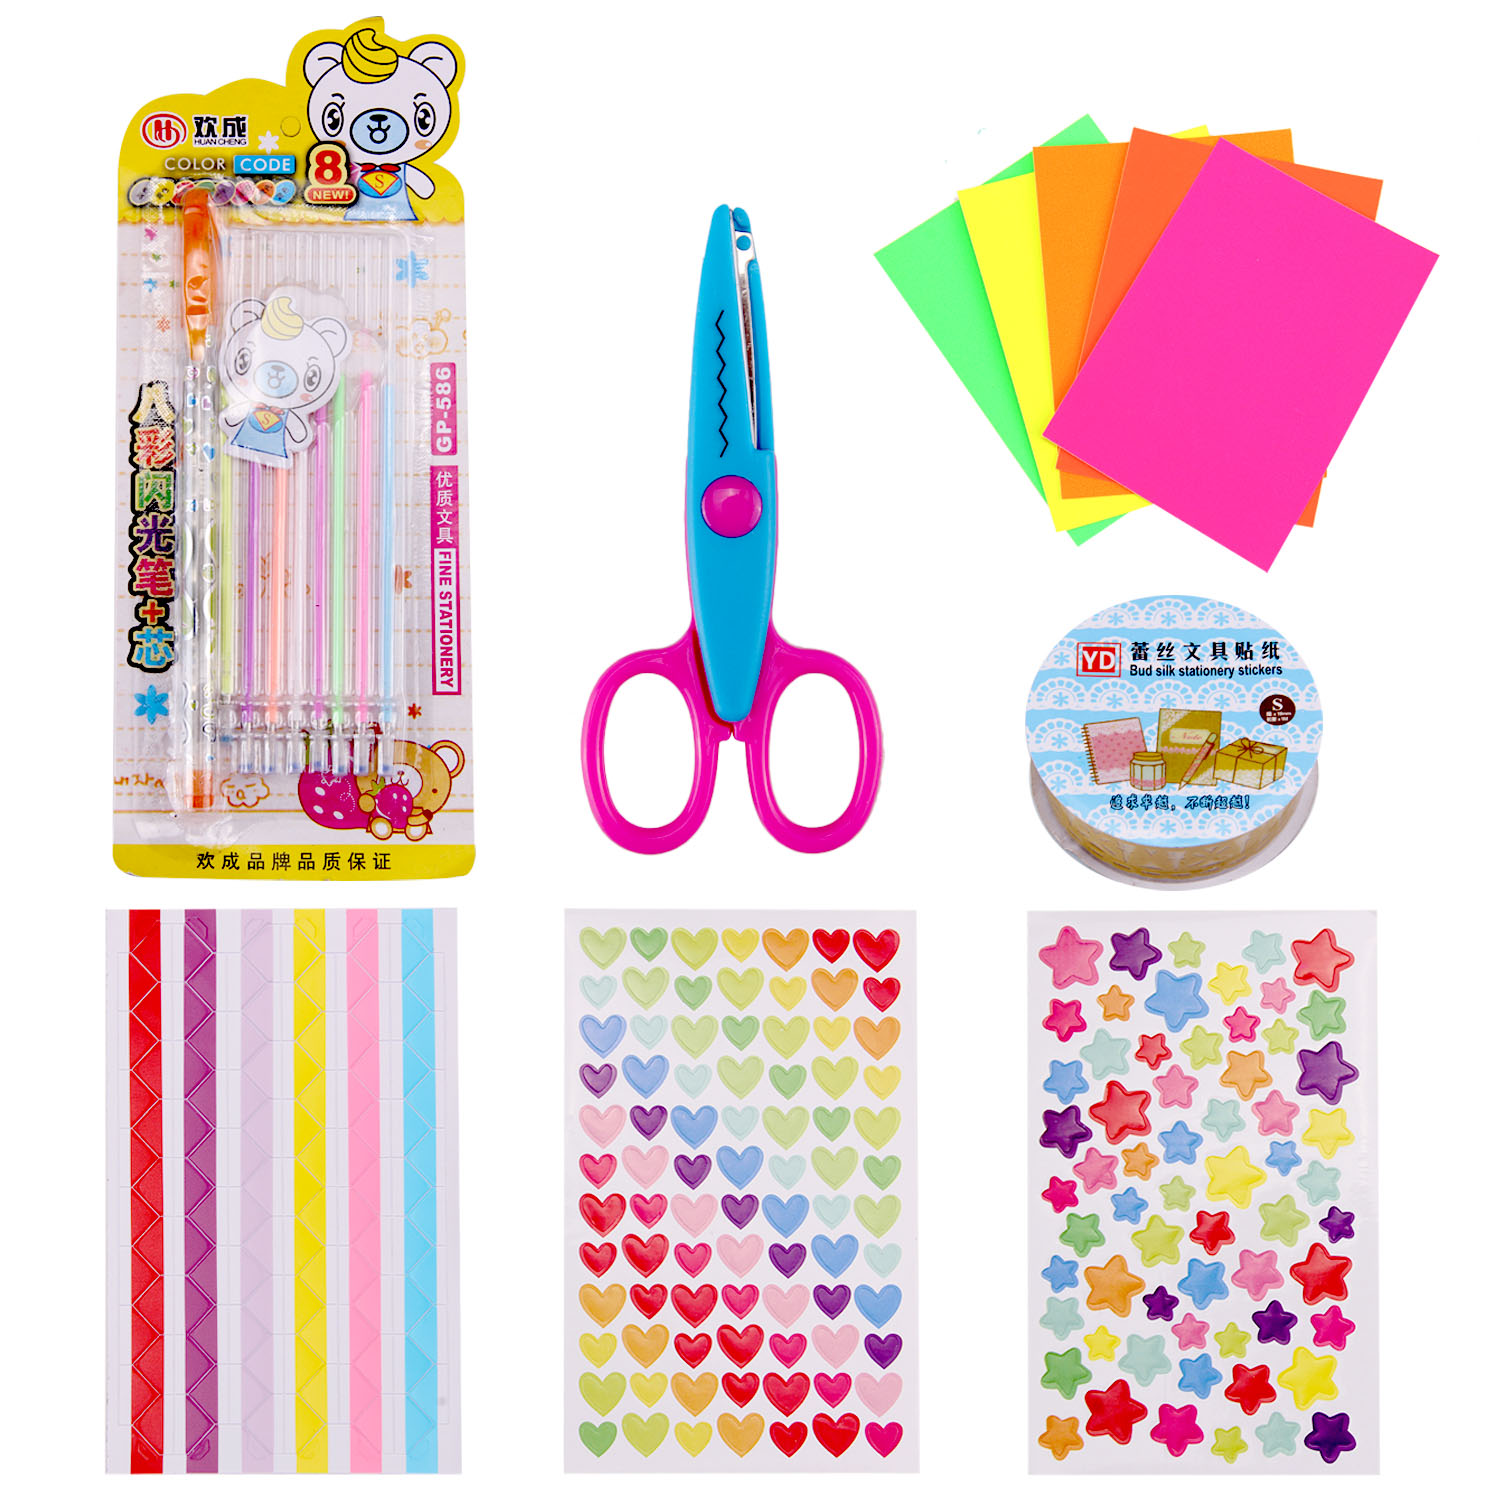 Children DIY Craft Kits Including Lace Tape Pens Sticker Scissor For DIY Diary Photo Album Scrapbook Explosion Box Gift Supplies